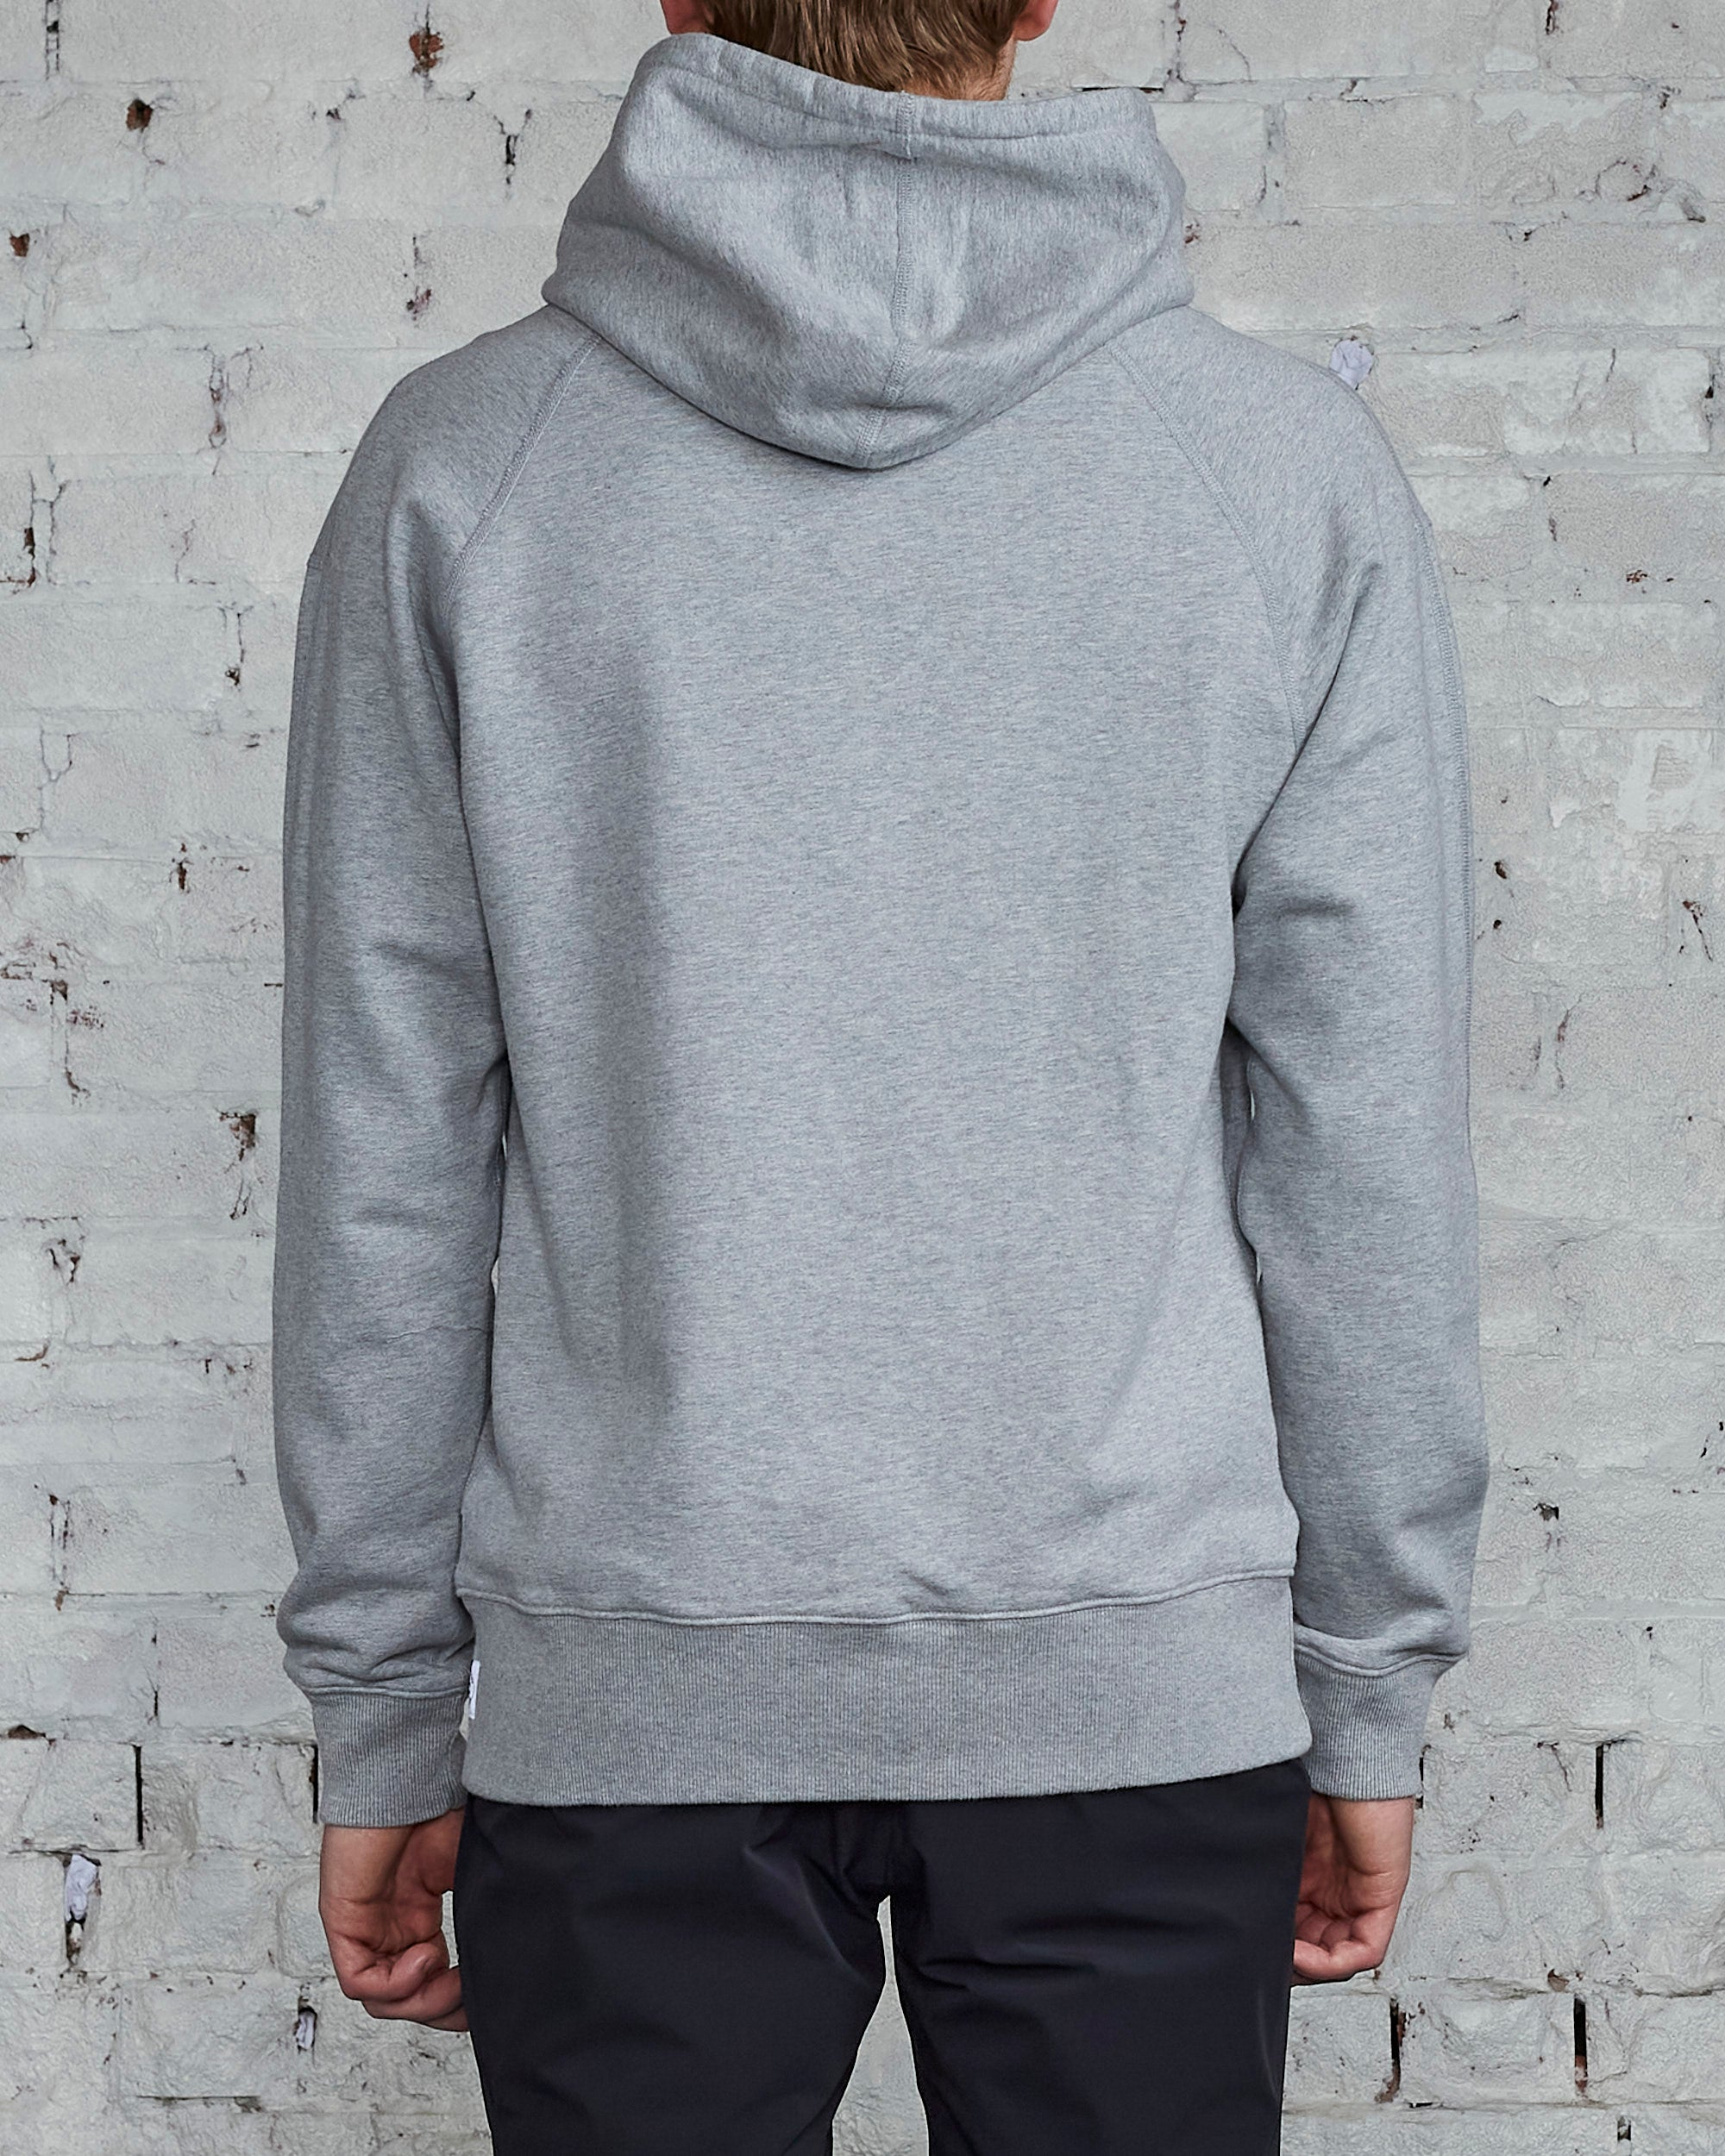 Reigning Champ Core Relaxed Pullover Hooded Sweatshirt Heather Grey -